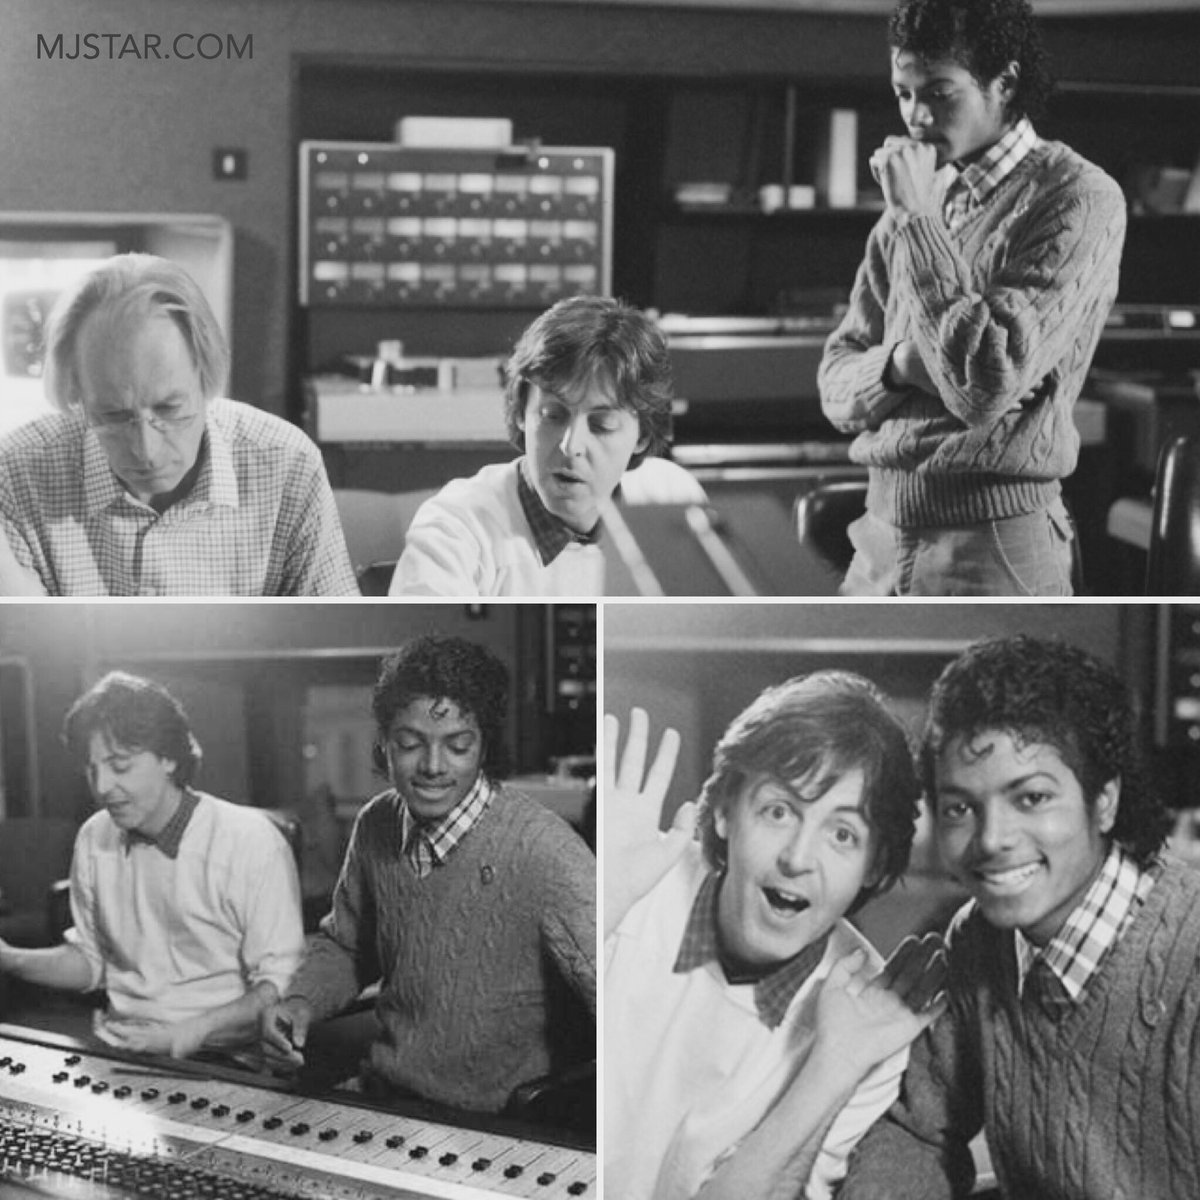 Celebrating The Life Of Michael Jackson On Twitter King Pop And Paul McCartney In Studio With Beatles Producer Sir George